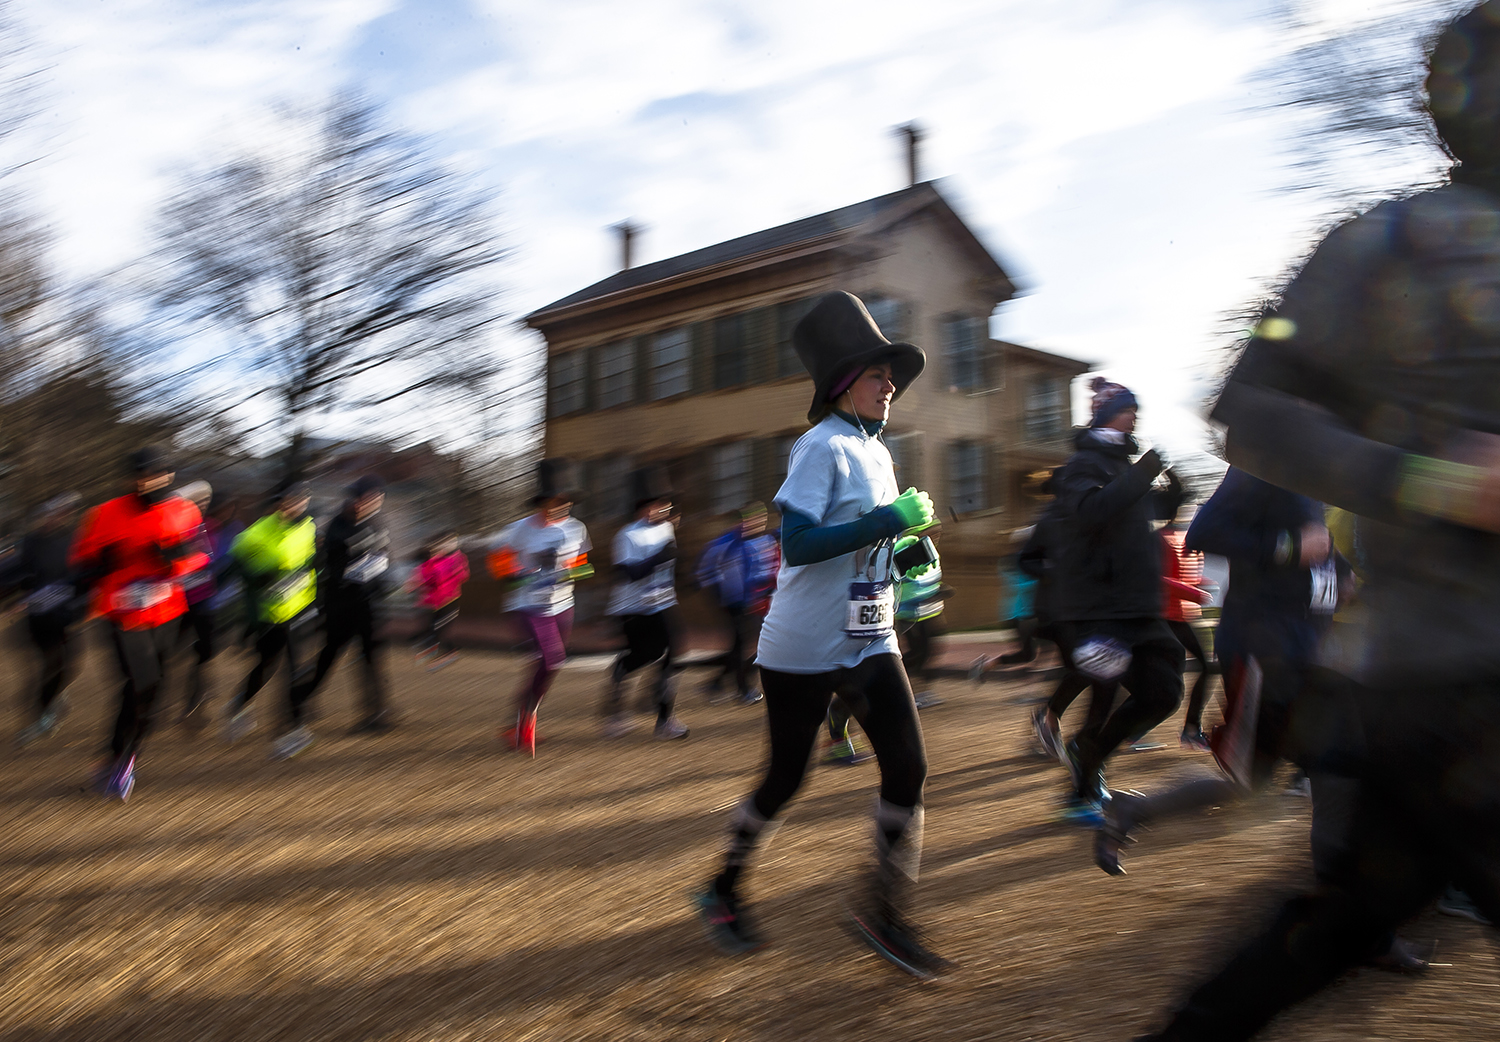 Runners make their way past the Lincoln Home during the 2018 Lincoln Presidential Half Marathon, Saturday, April 7, 2018, in Springfield, Ill. Around 1100 runners took part in the 13.1 mile race around historic landmarks in Springfield with temperatures in the 20s. [Justin L. Fowler/The State Journal-Register]